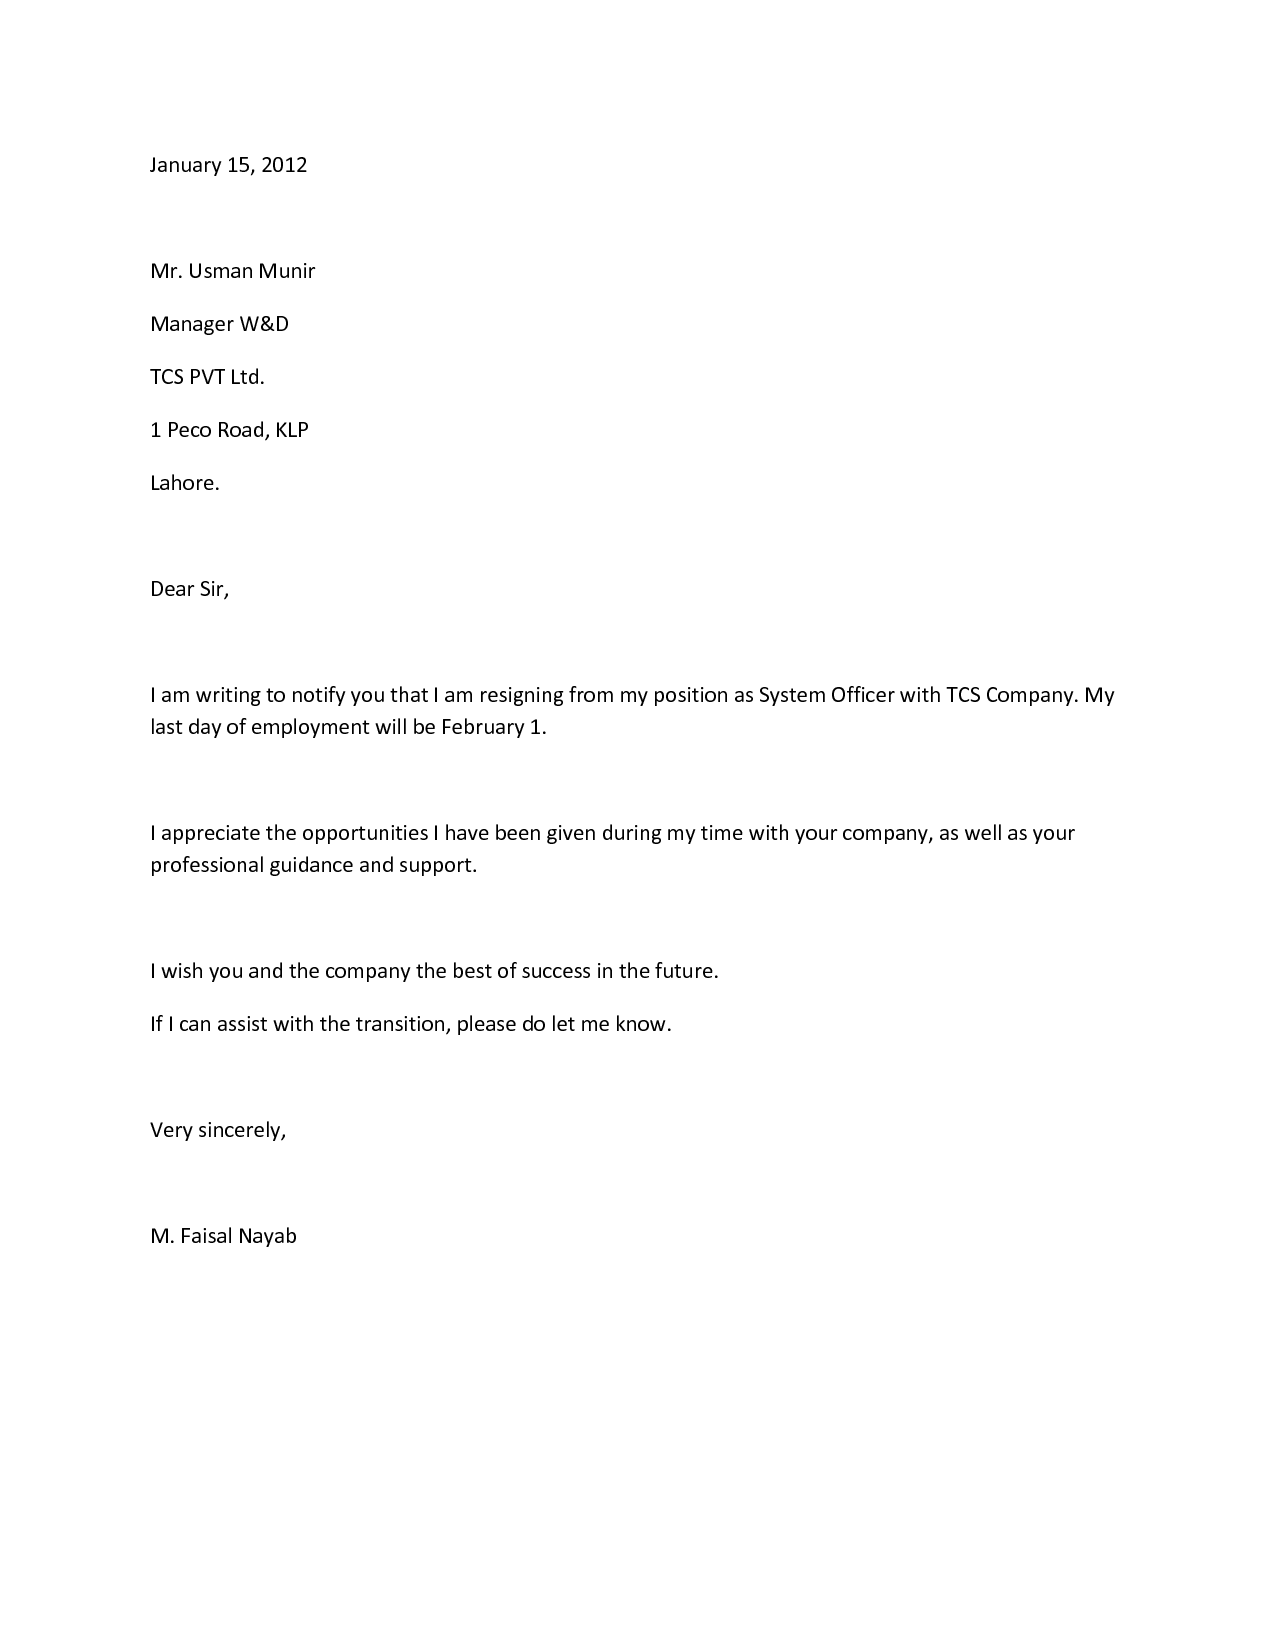 How To Write Letter For Resignation free resume builder downloads ...